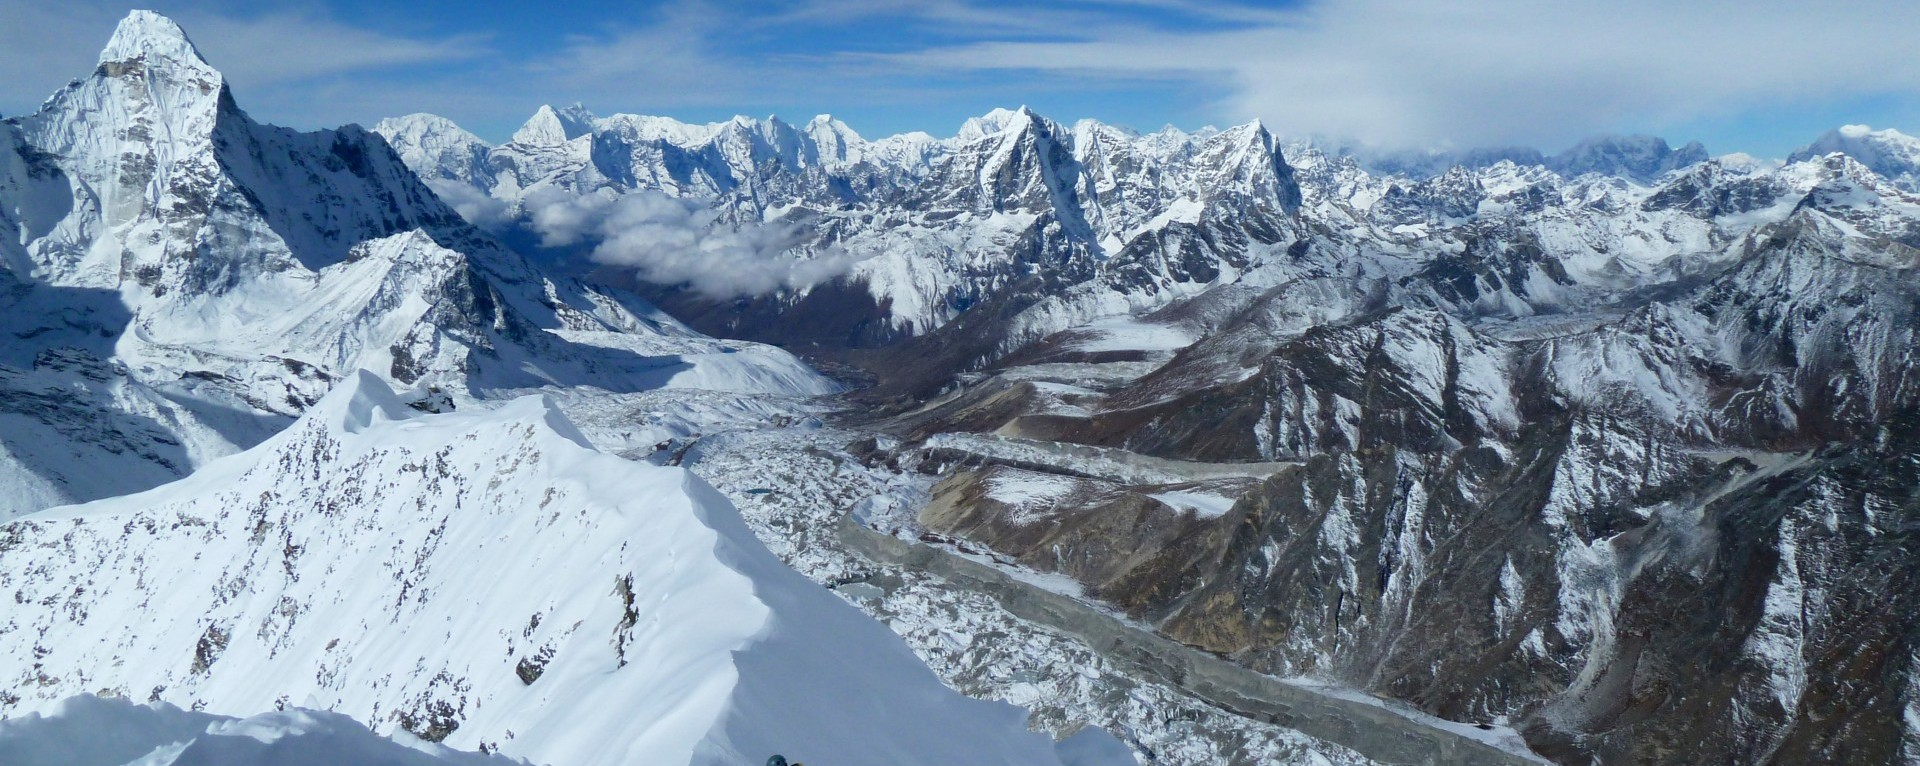 The view from top of the Island Peak, Nepal